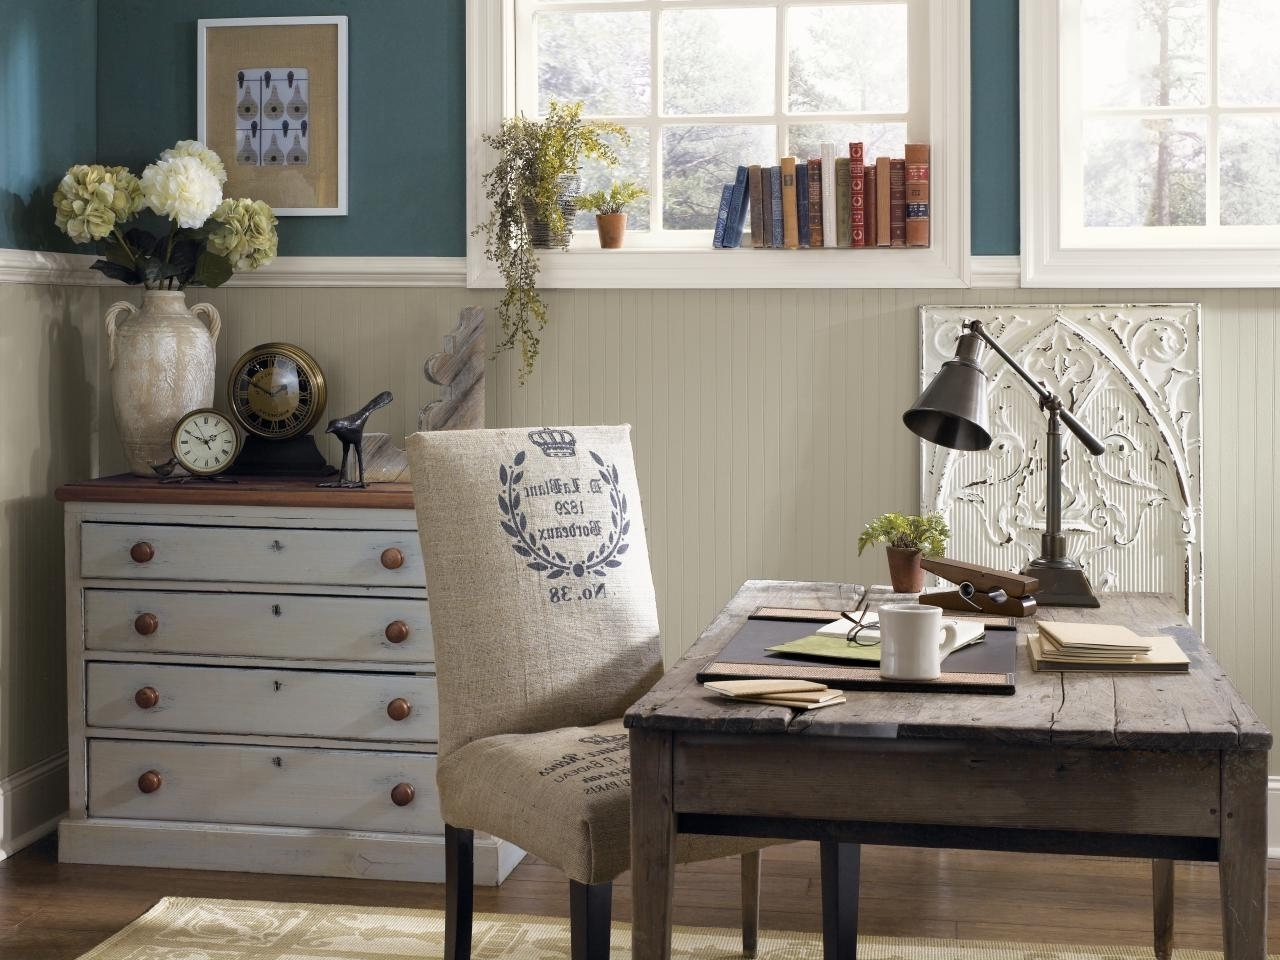 A rustic home office with some added color for diversity